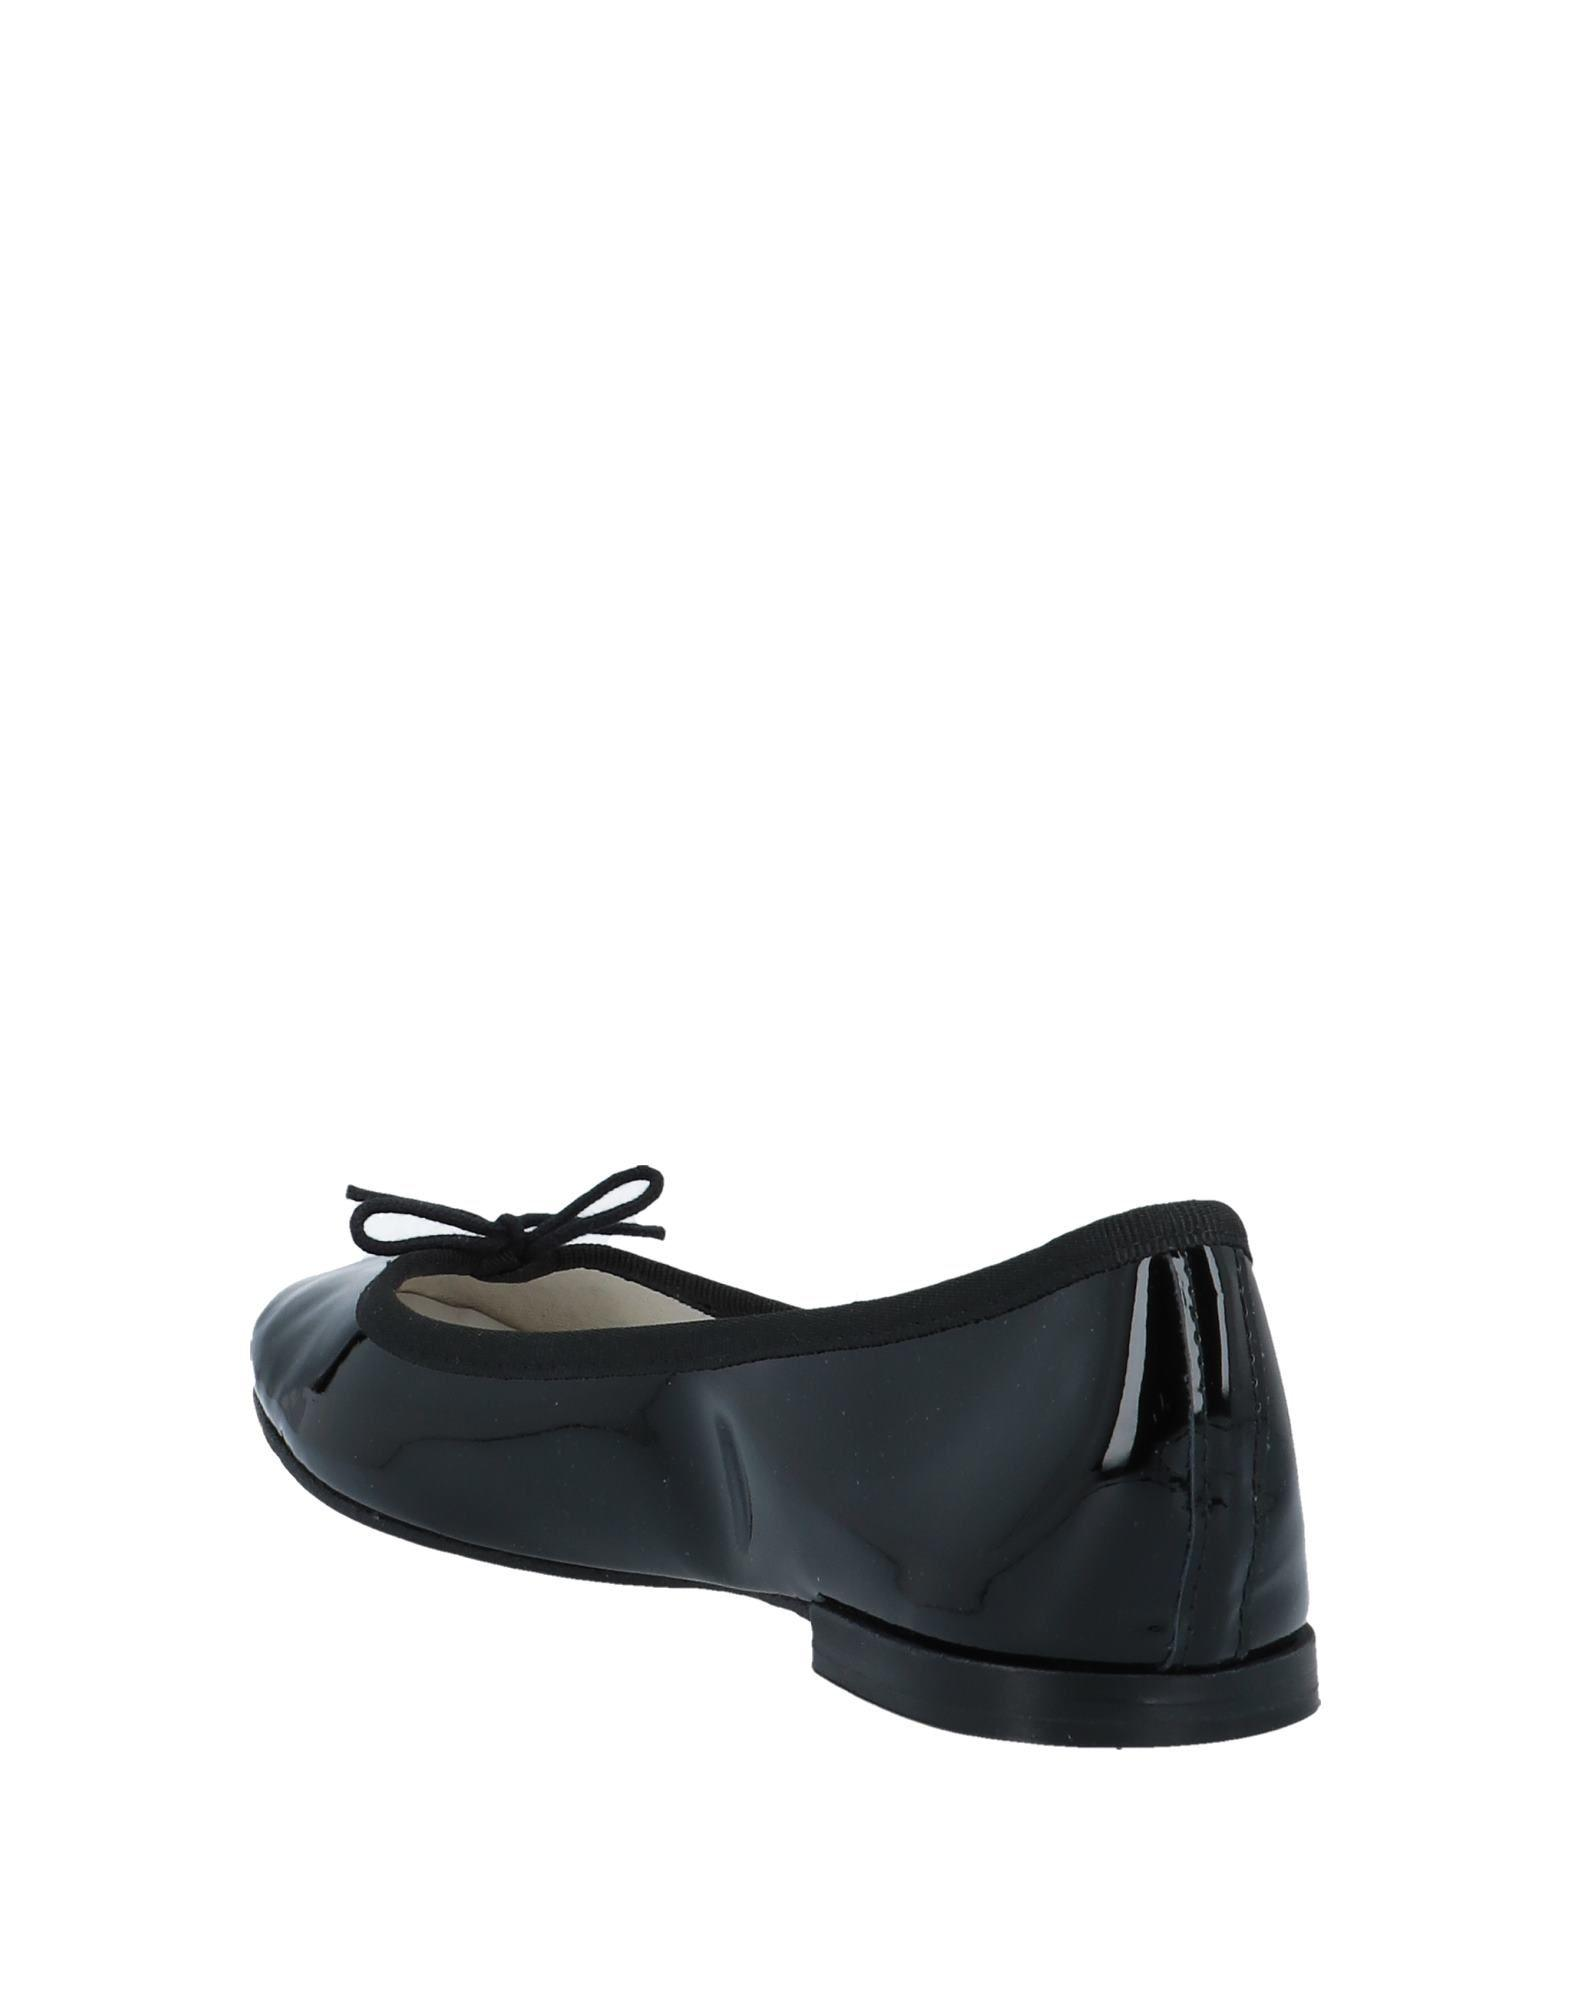 1f187187a2cd Lyst - Repetto Ballet Flats in Black